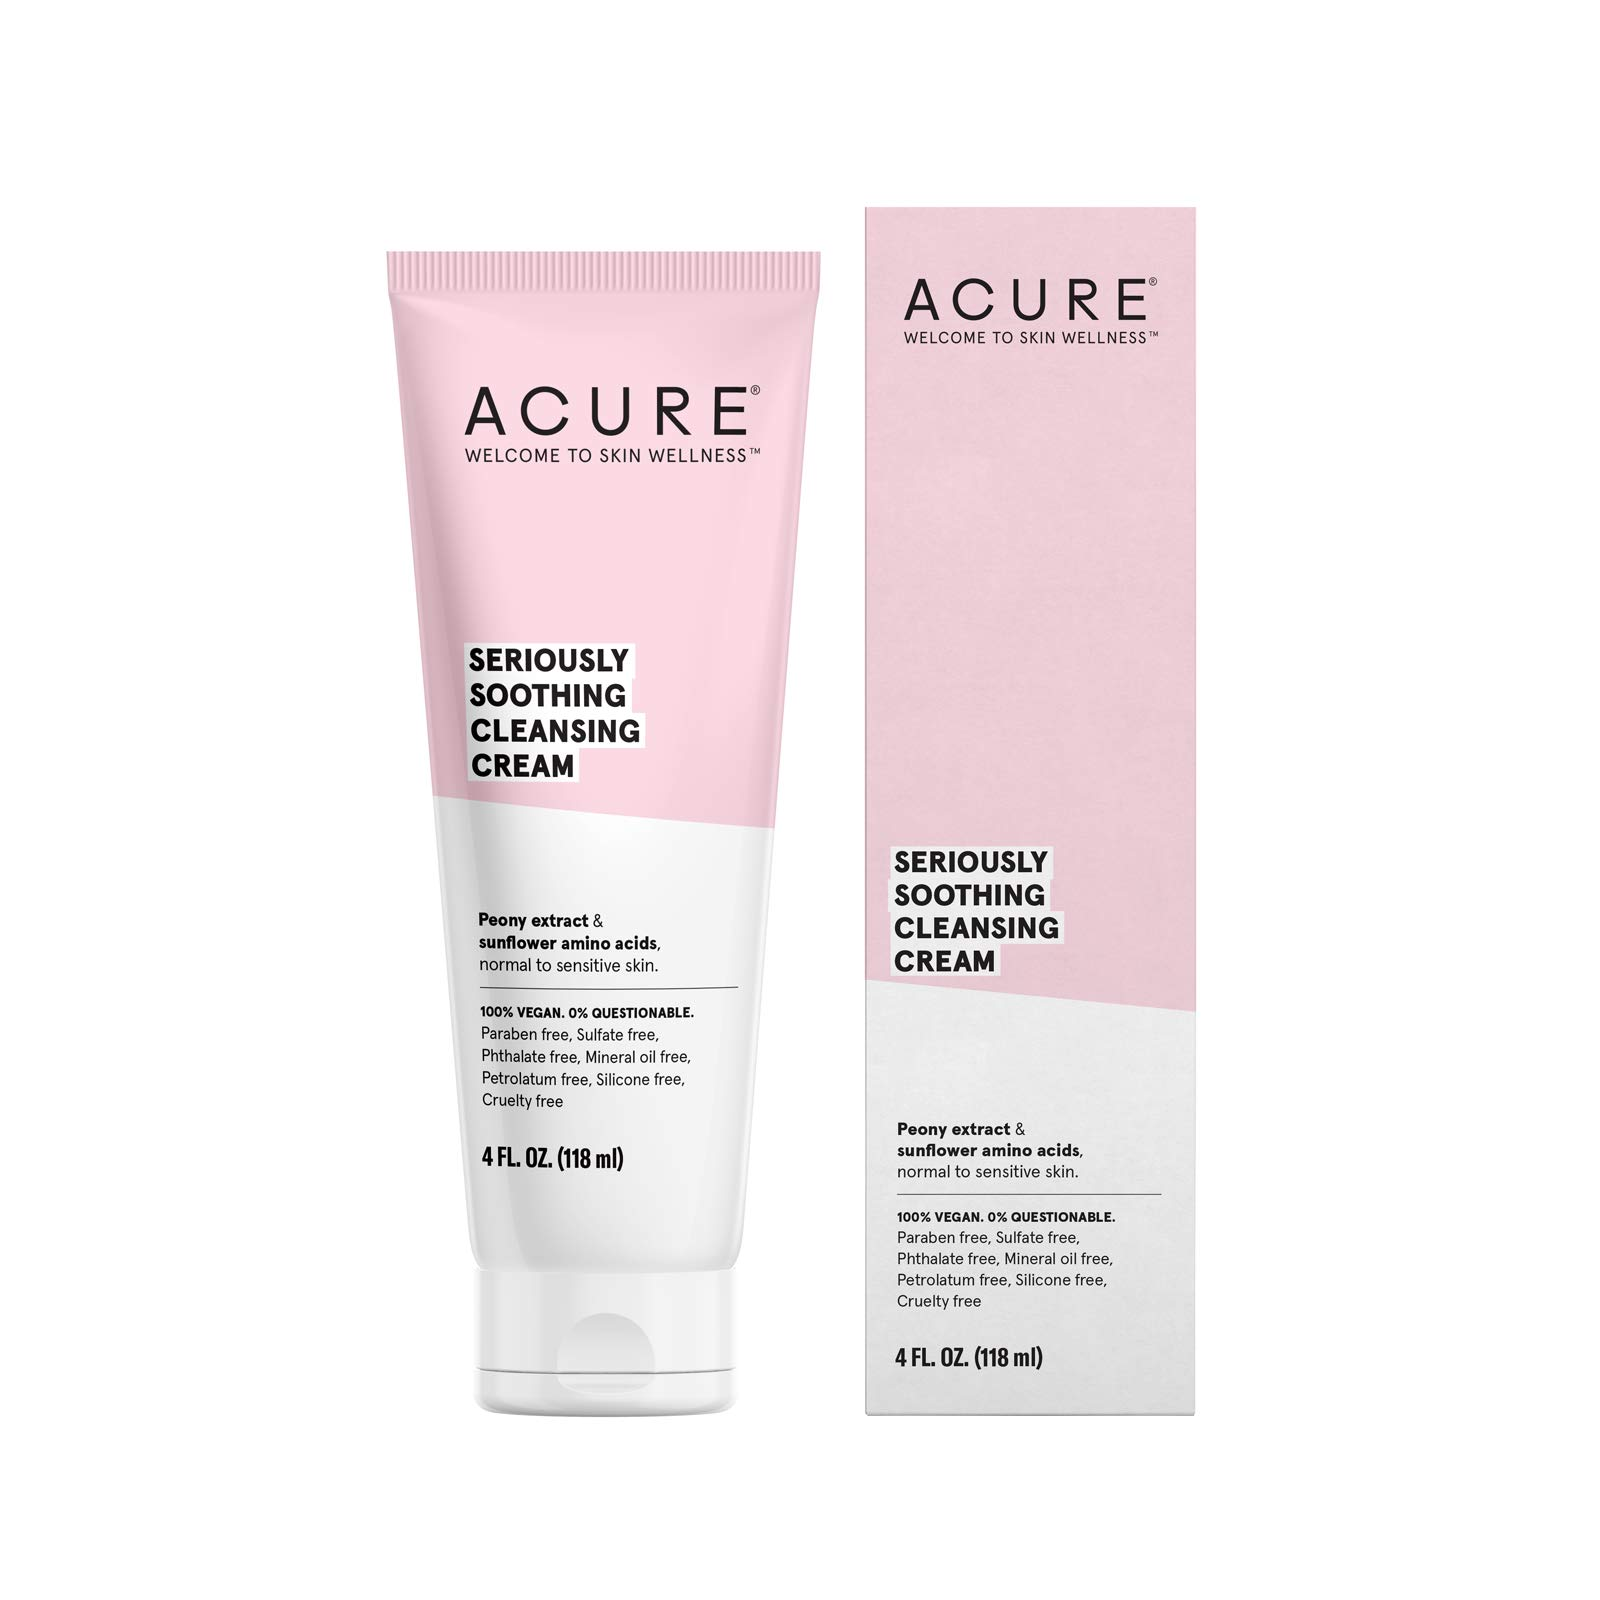 ACURE Seriously Soothing Cleansing Cream | 100% Vegan | For Dry to Sensitive Skin | Peony Extract & Chamomille - Soothes , Hydrates & Cleanses | 4 Fl Oz